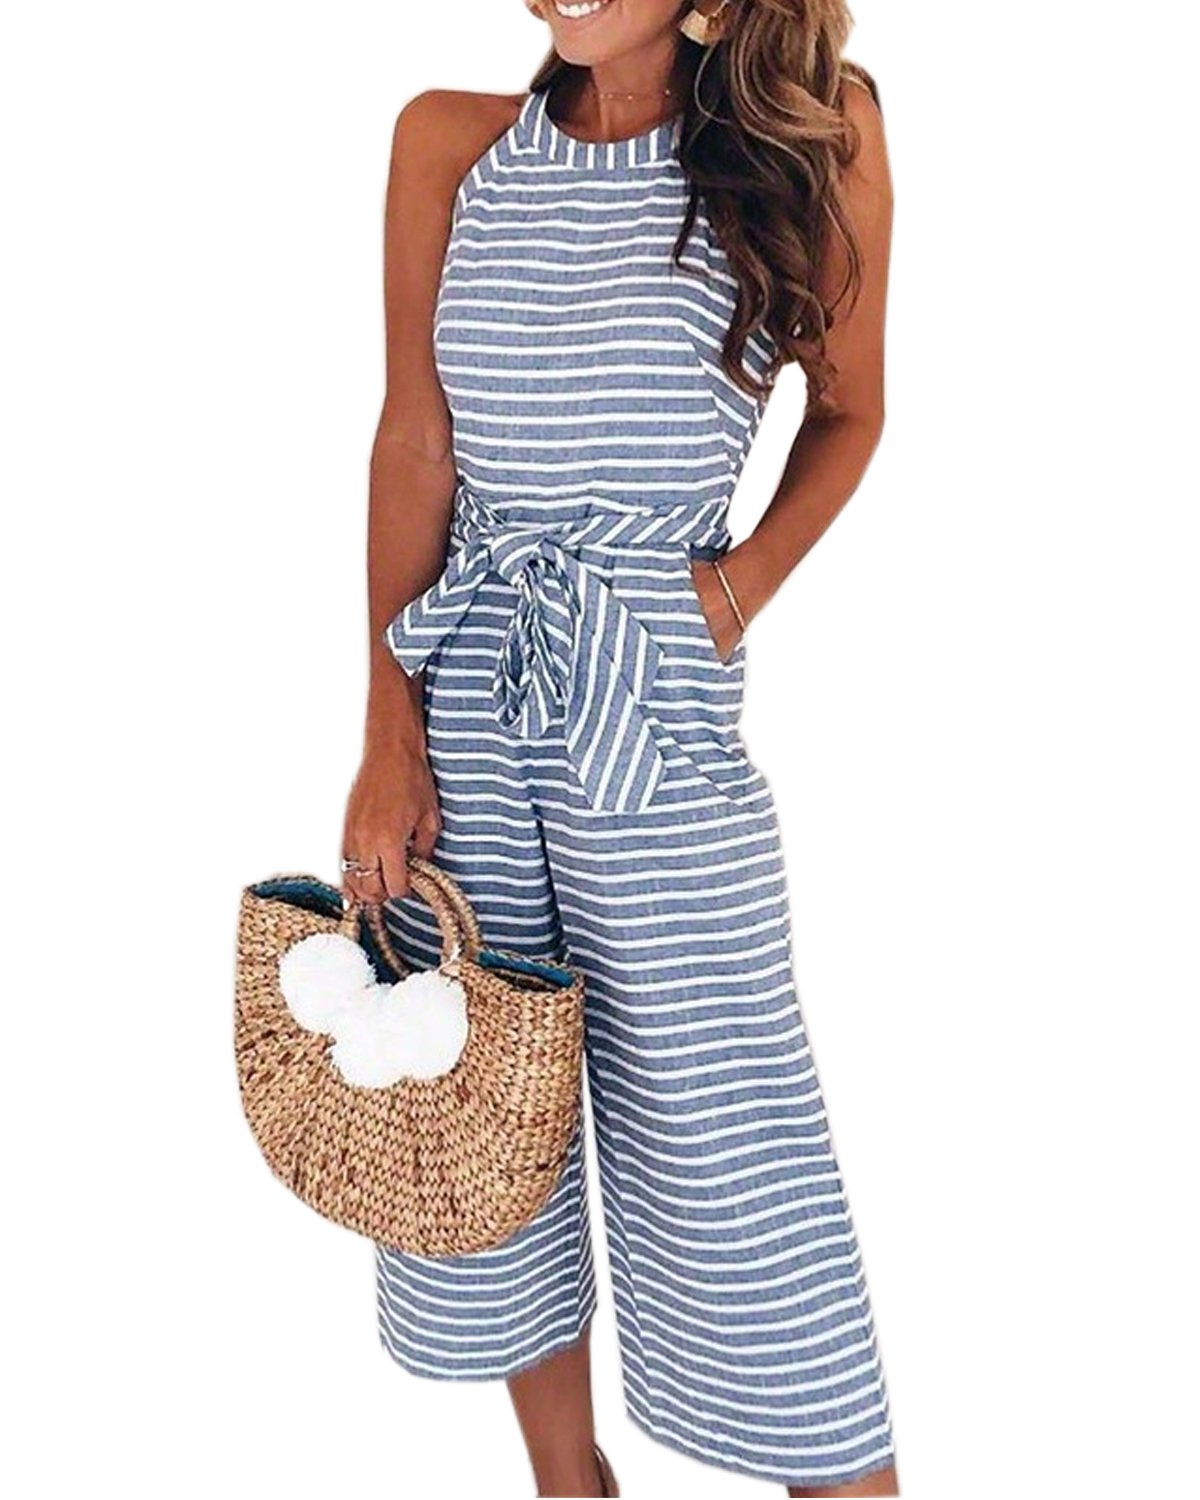 AELSON Women Sleeveless Striped Jumpsuits Waist Belted Wide Leg Pants Romper with Pockets by AELSON (Image #1)